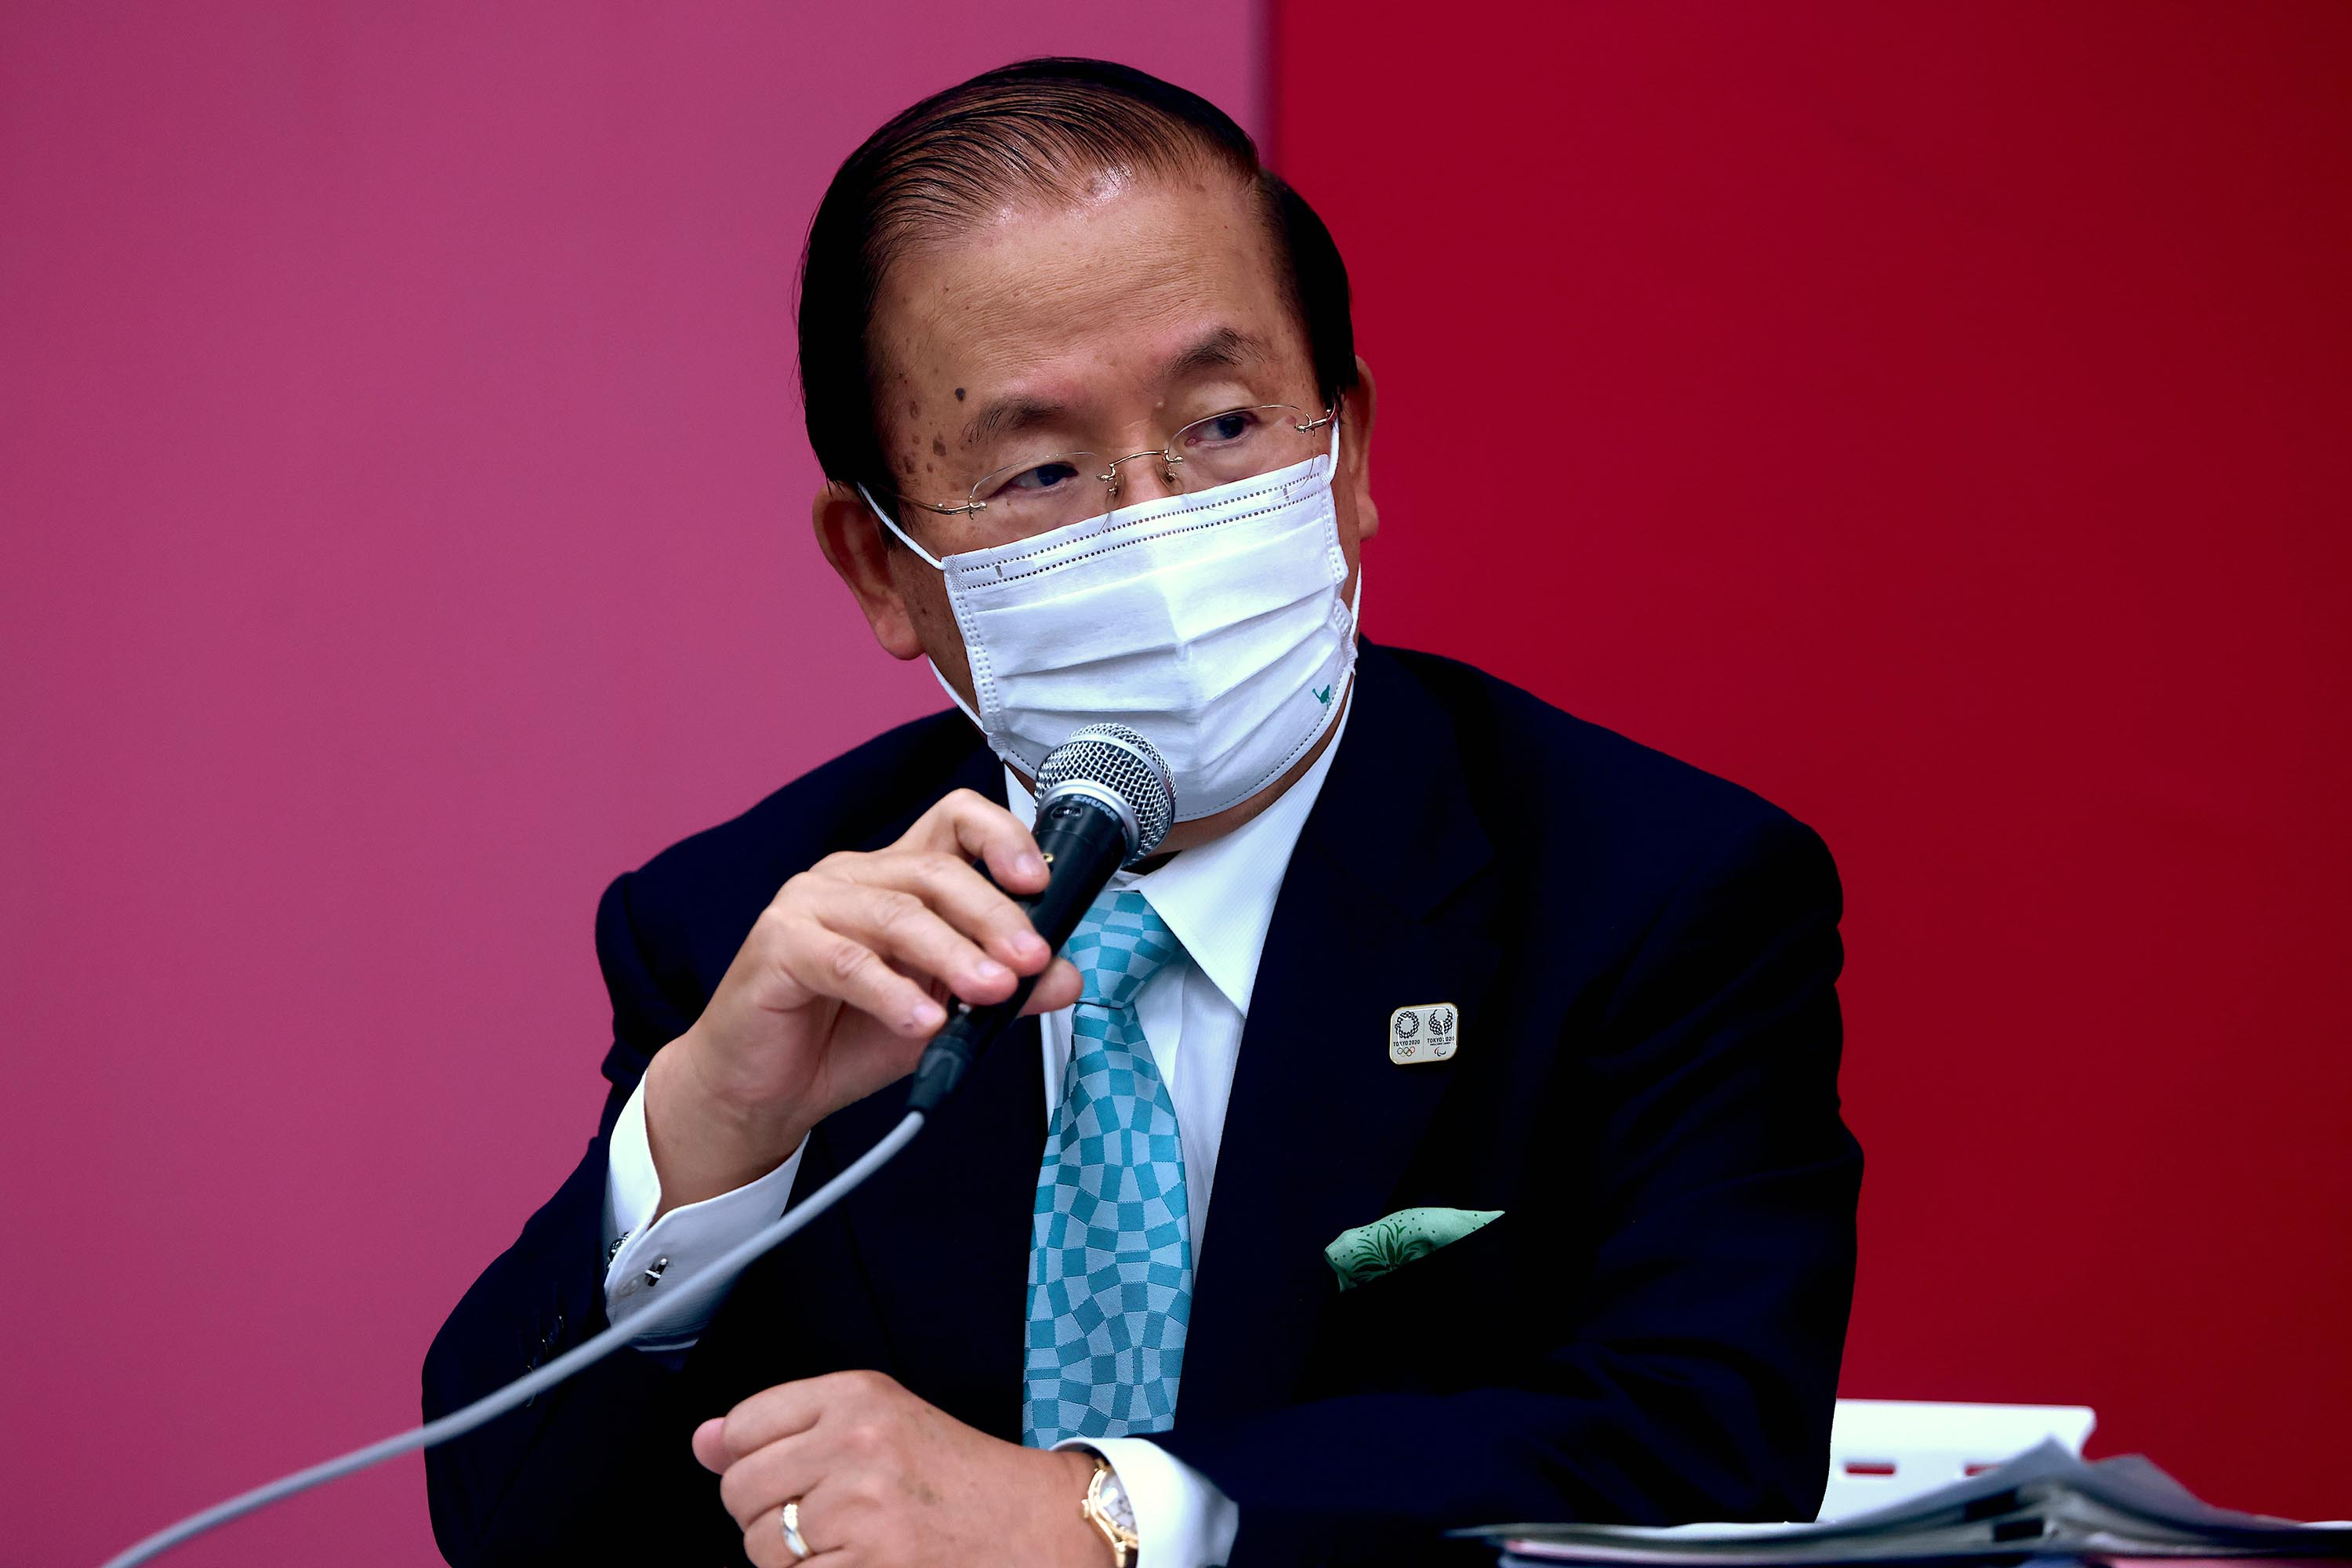 Tokyo 2020 CEO Toshiro Muto attends a press conference on July 9, 2021 in Tokyo, Japan.